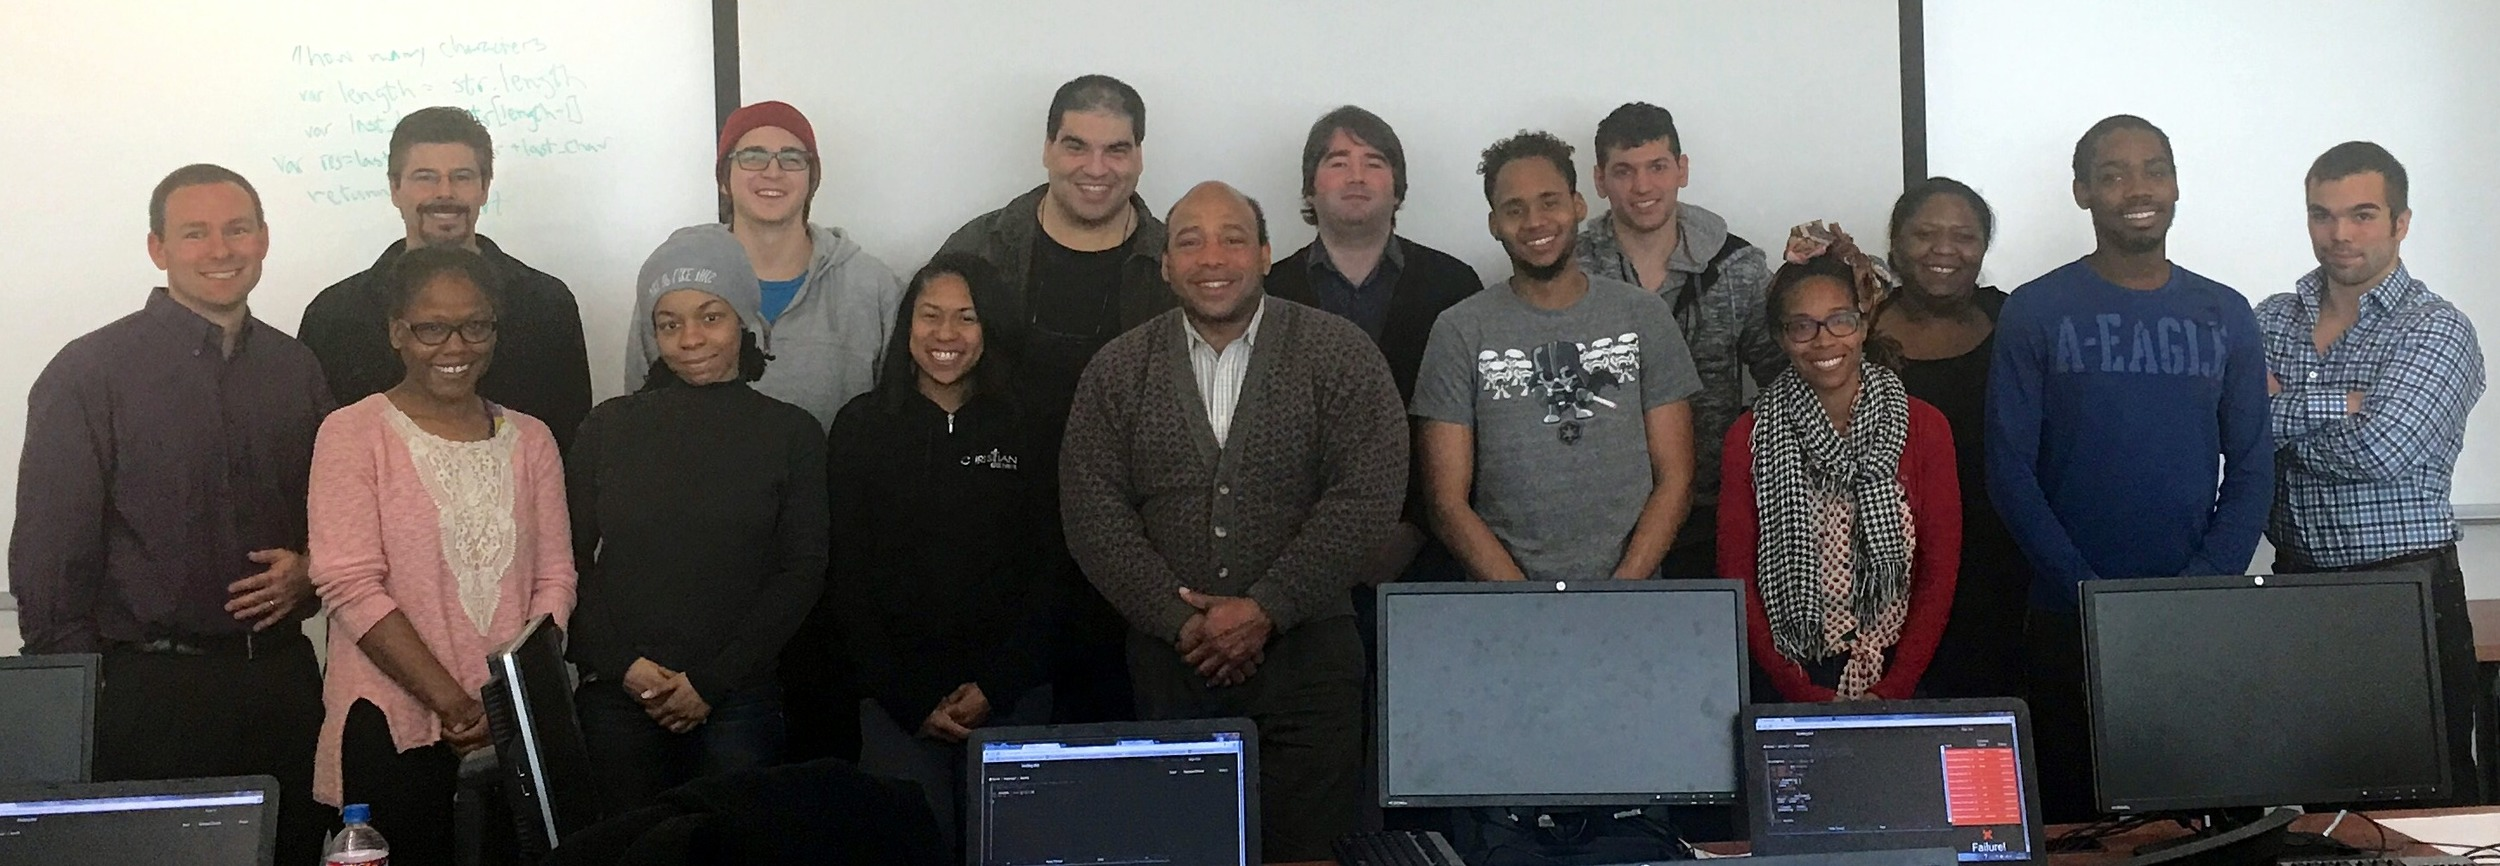 Matt meets the first cohort of Cleveland Codes students. Cleveland Codes is one of the nation's first nonprofit software development bootcamps.